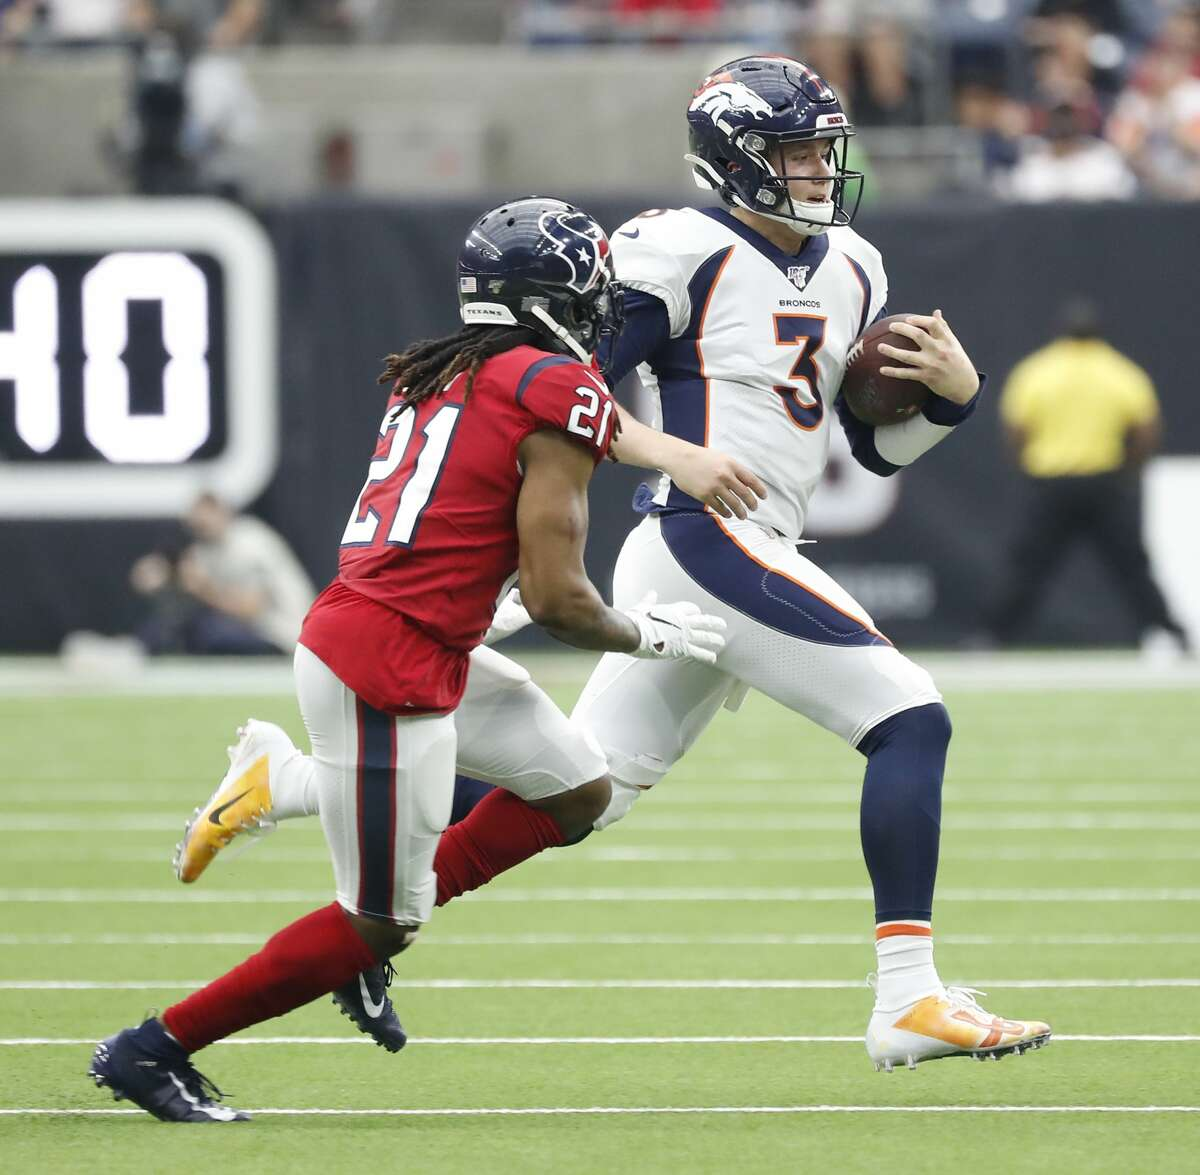 Bradley Roby played the most snaps among Texans cornerbacks Sunday, but was pulled from the game for part of the first half.